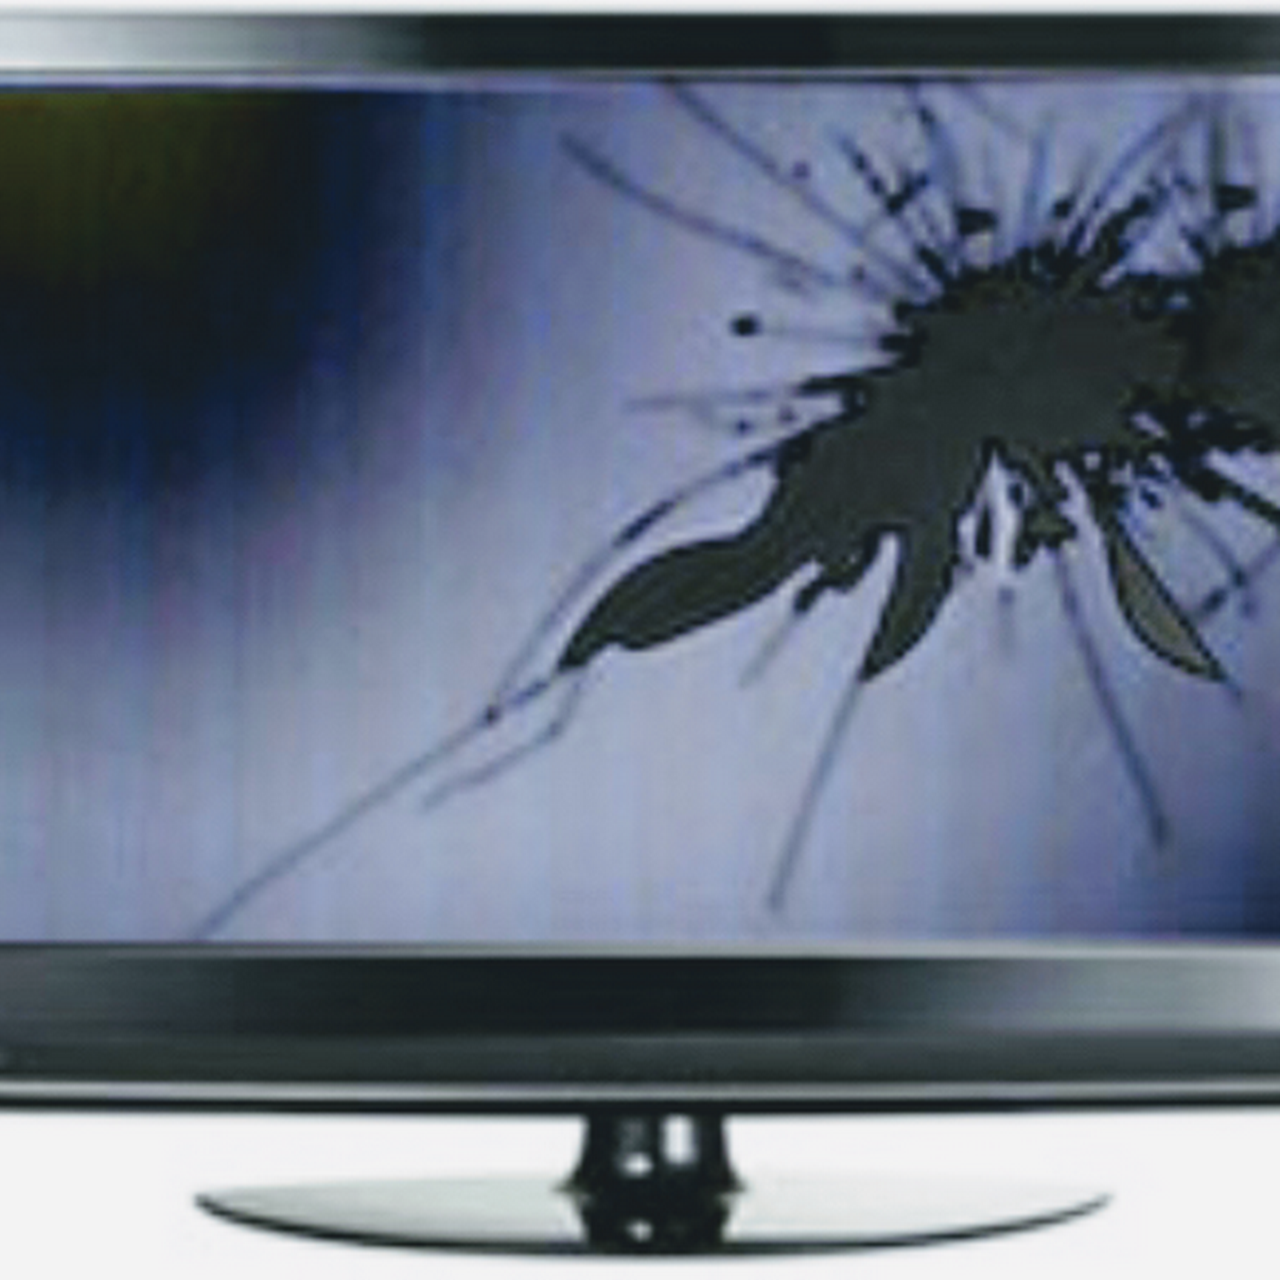 Campbell TV Service - Television Repair Service in Shreveport